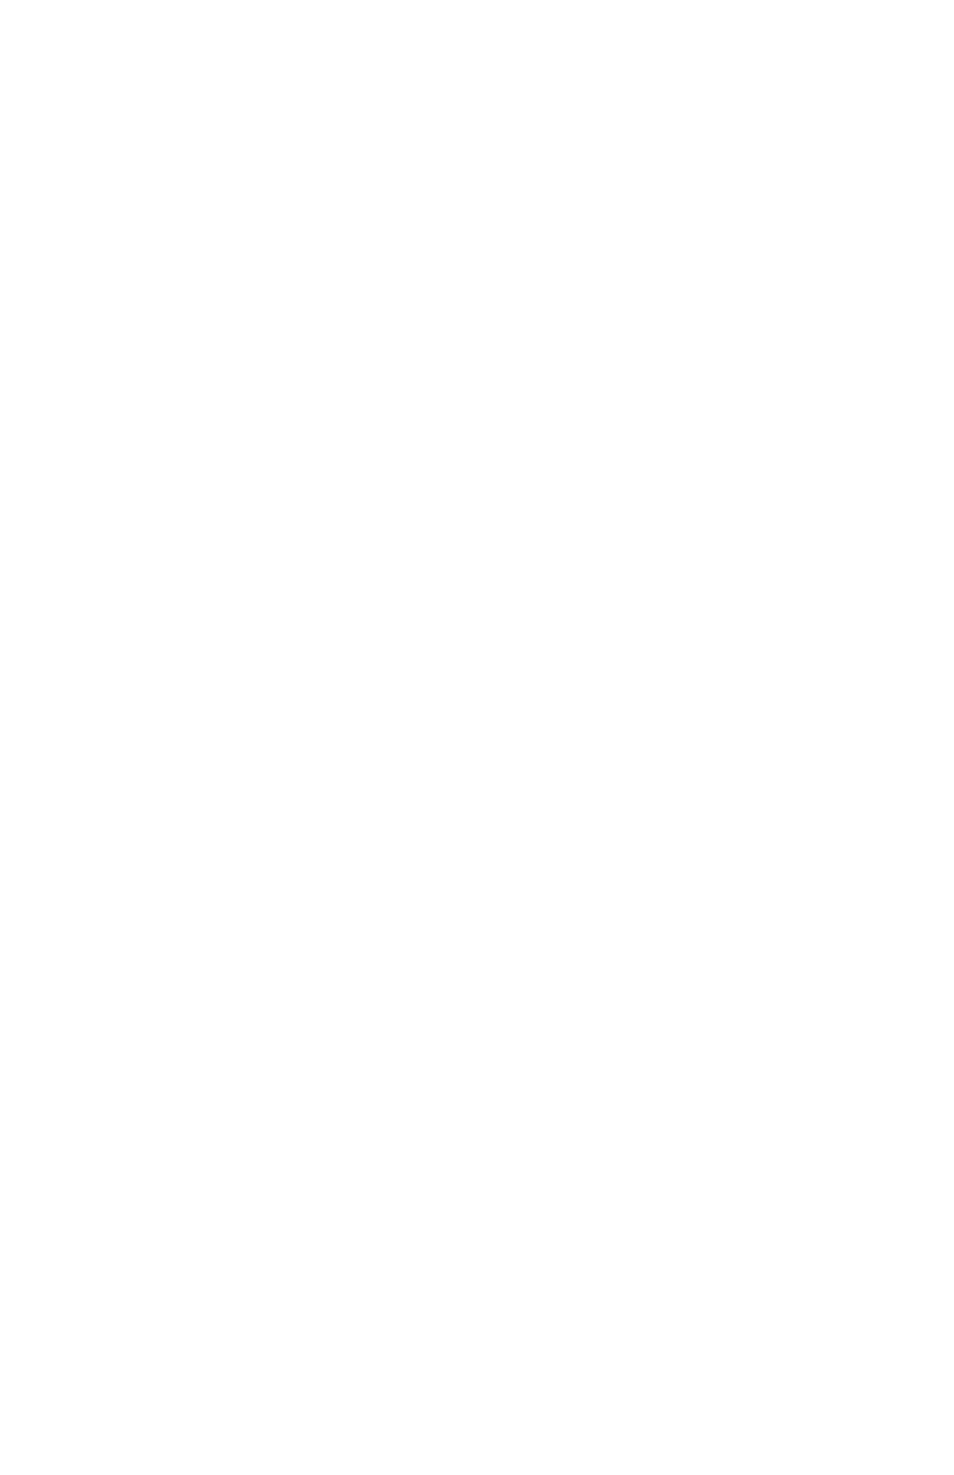 Introduction, Rotisserie | George Foreman GR82 User Manual | Page 8 / 32